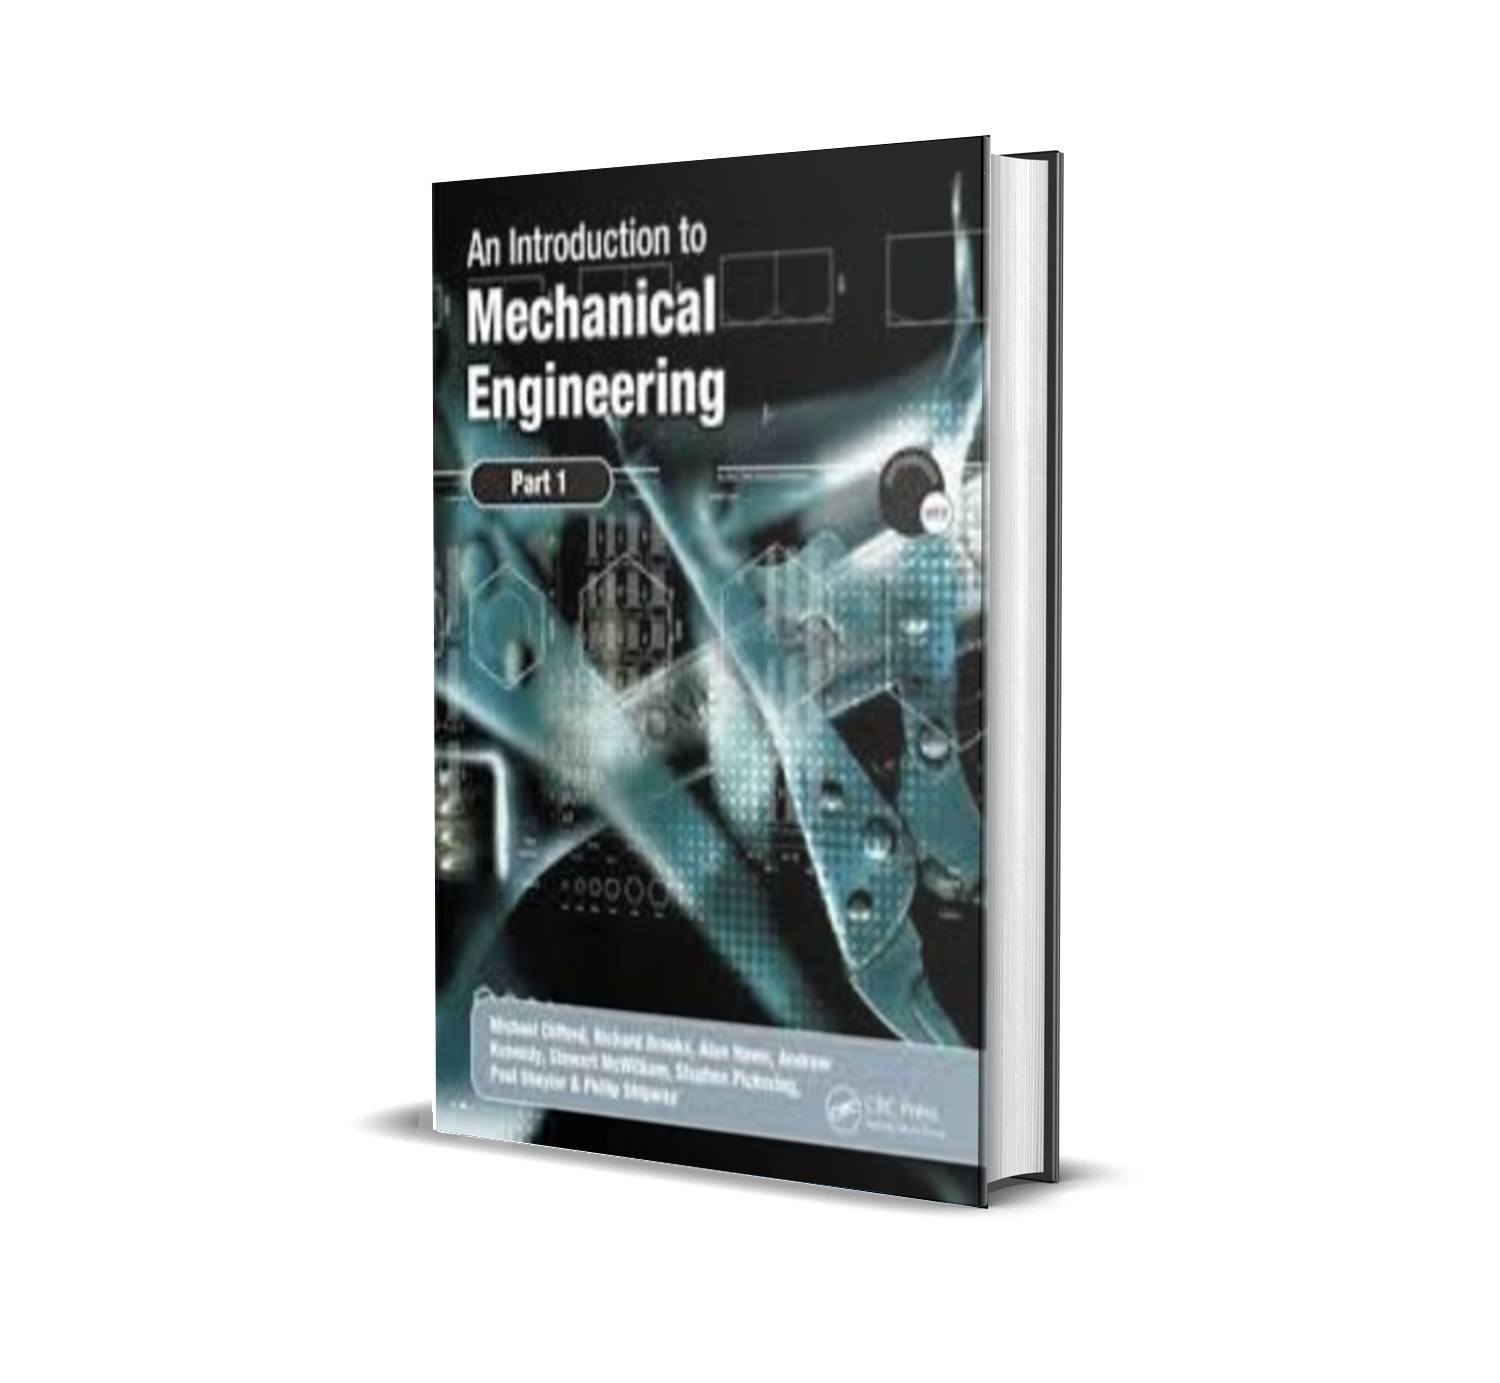 An Introduction to Mechanical Engineering - Michael Clifford